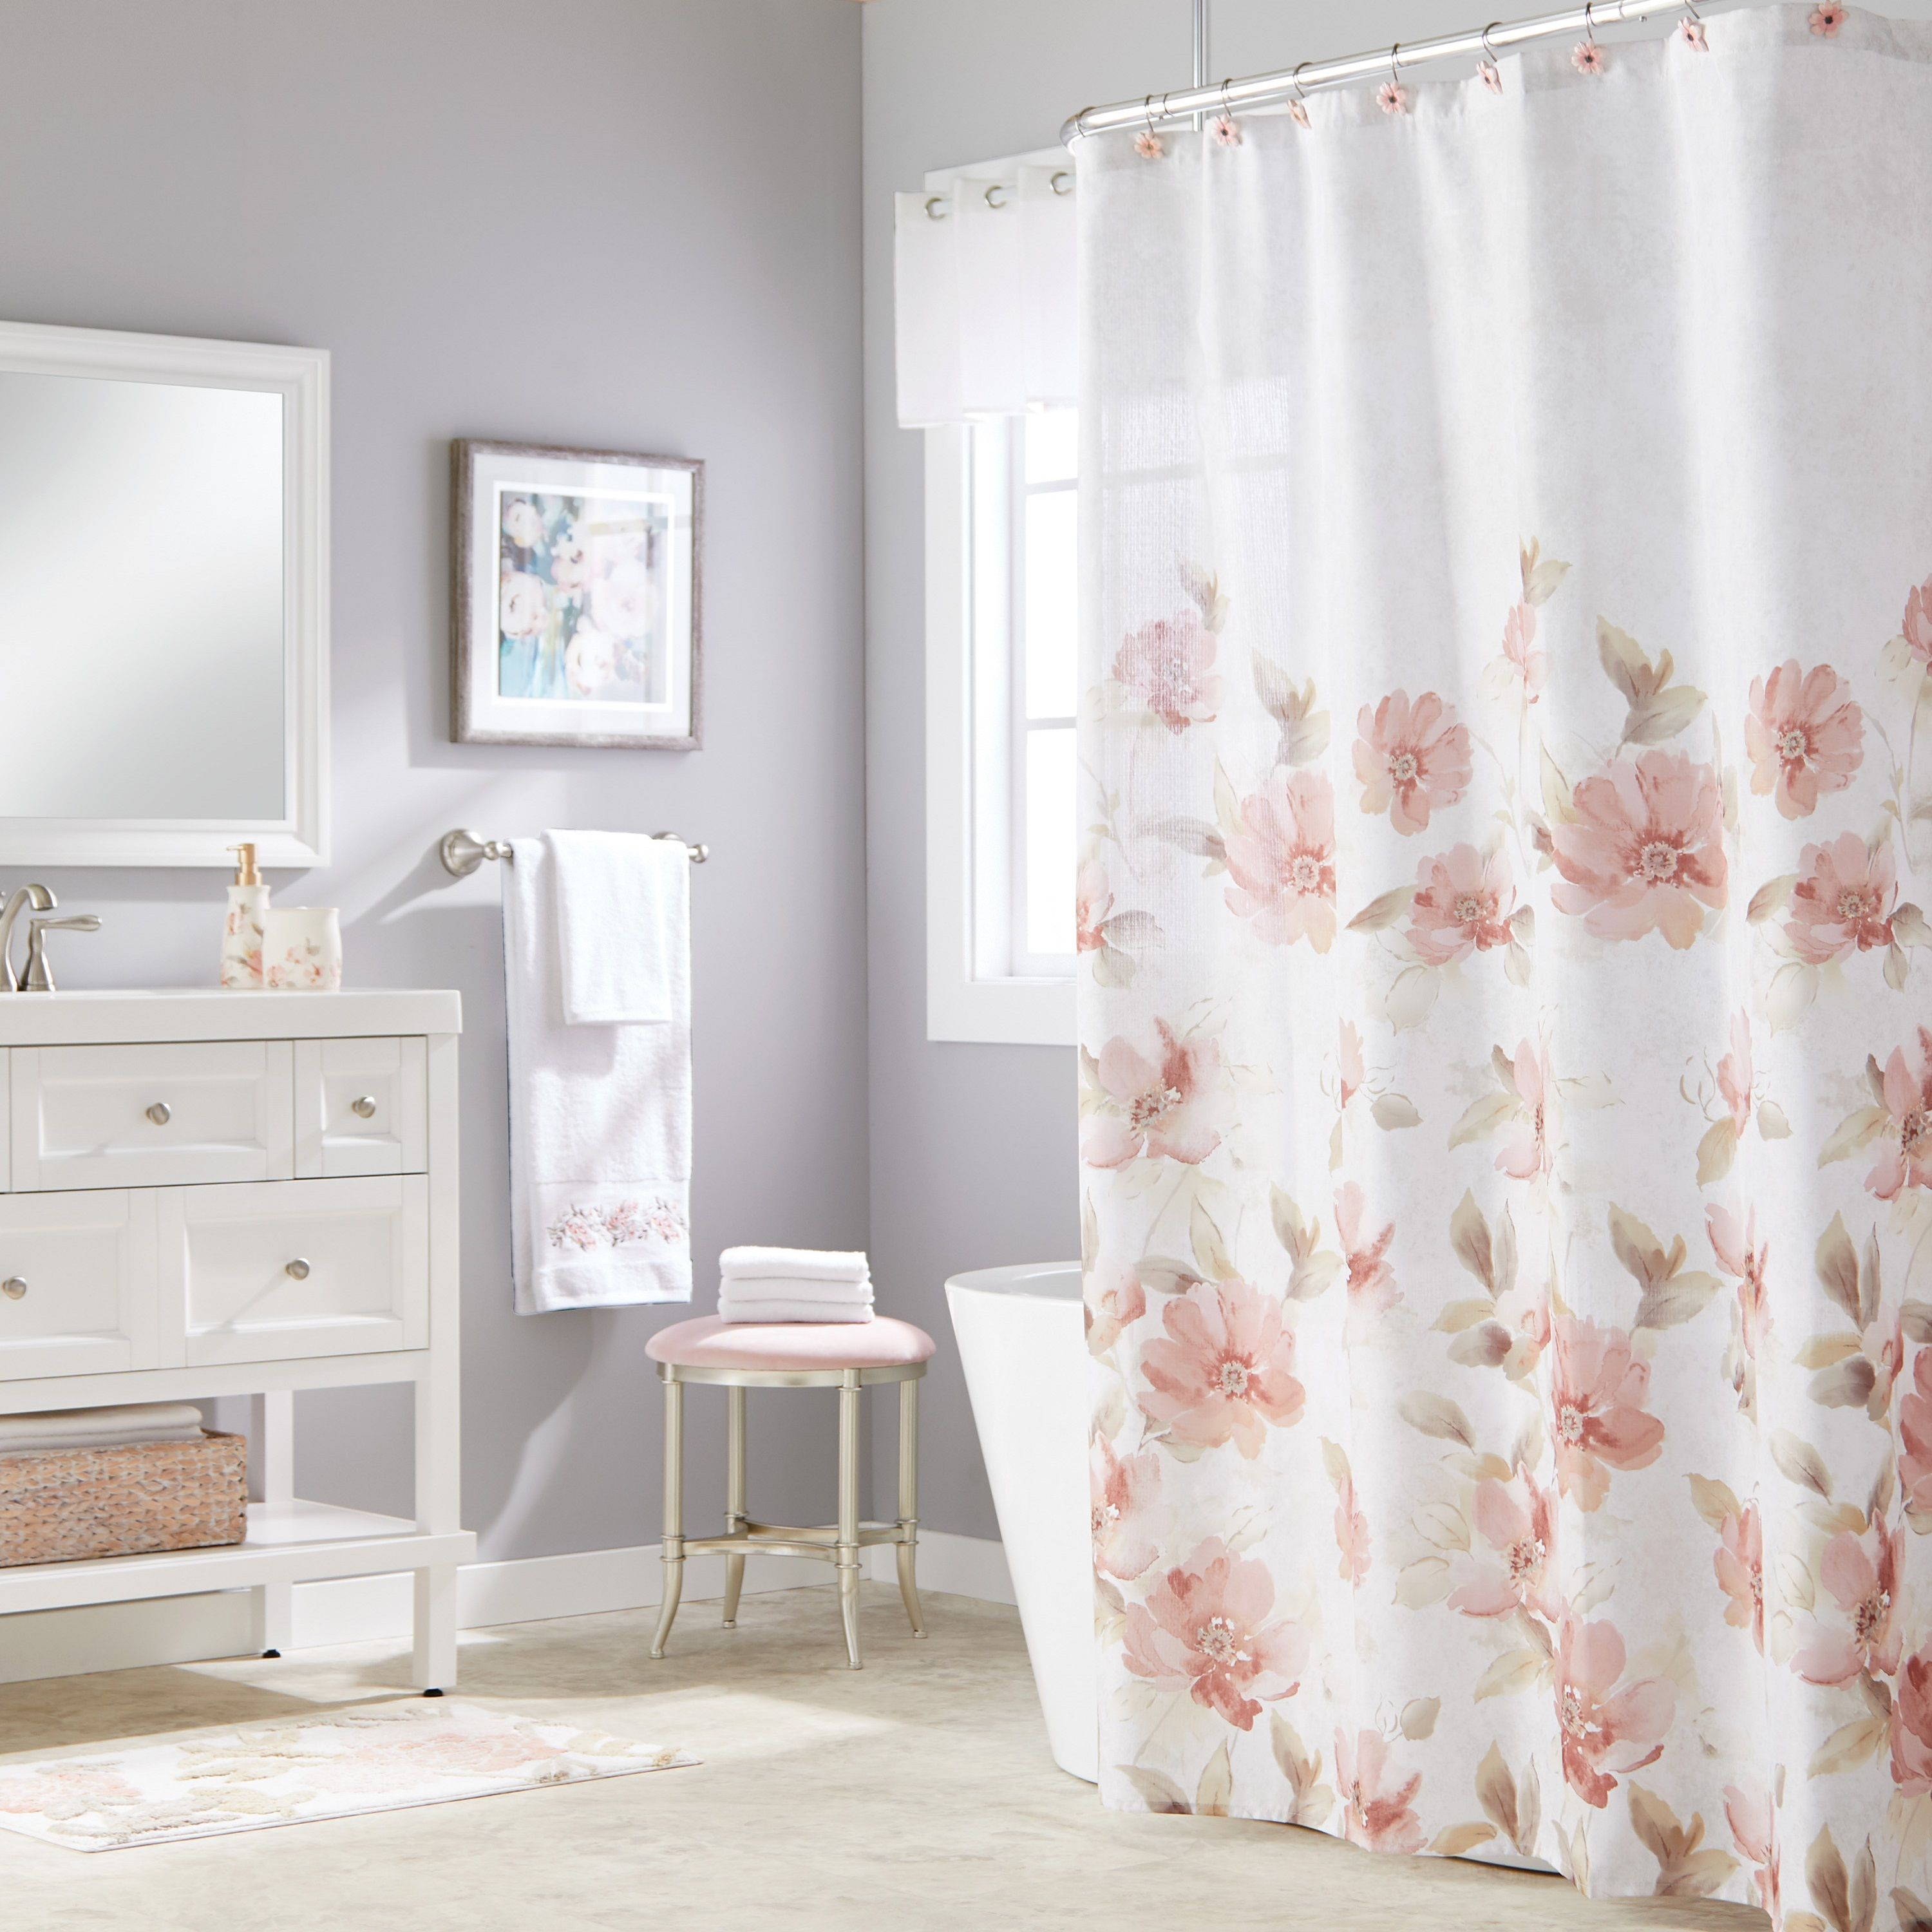 Home Pink Shower Curtains Floral Shower Curtains Fabric Shower Curtains